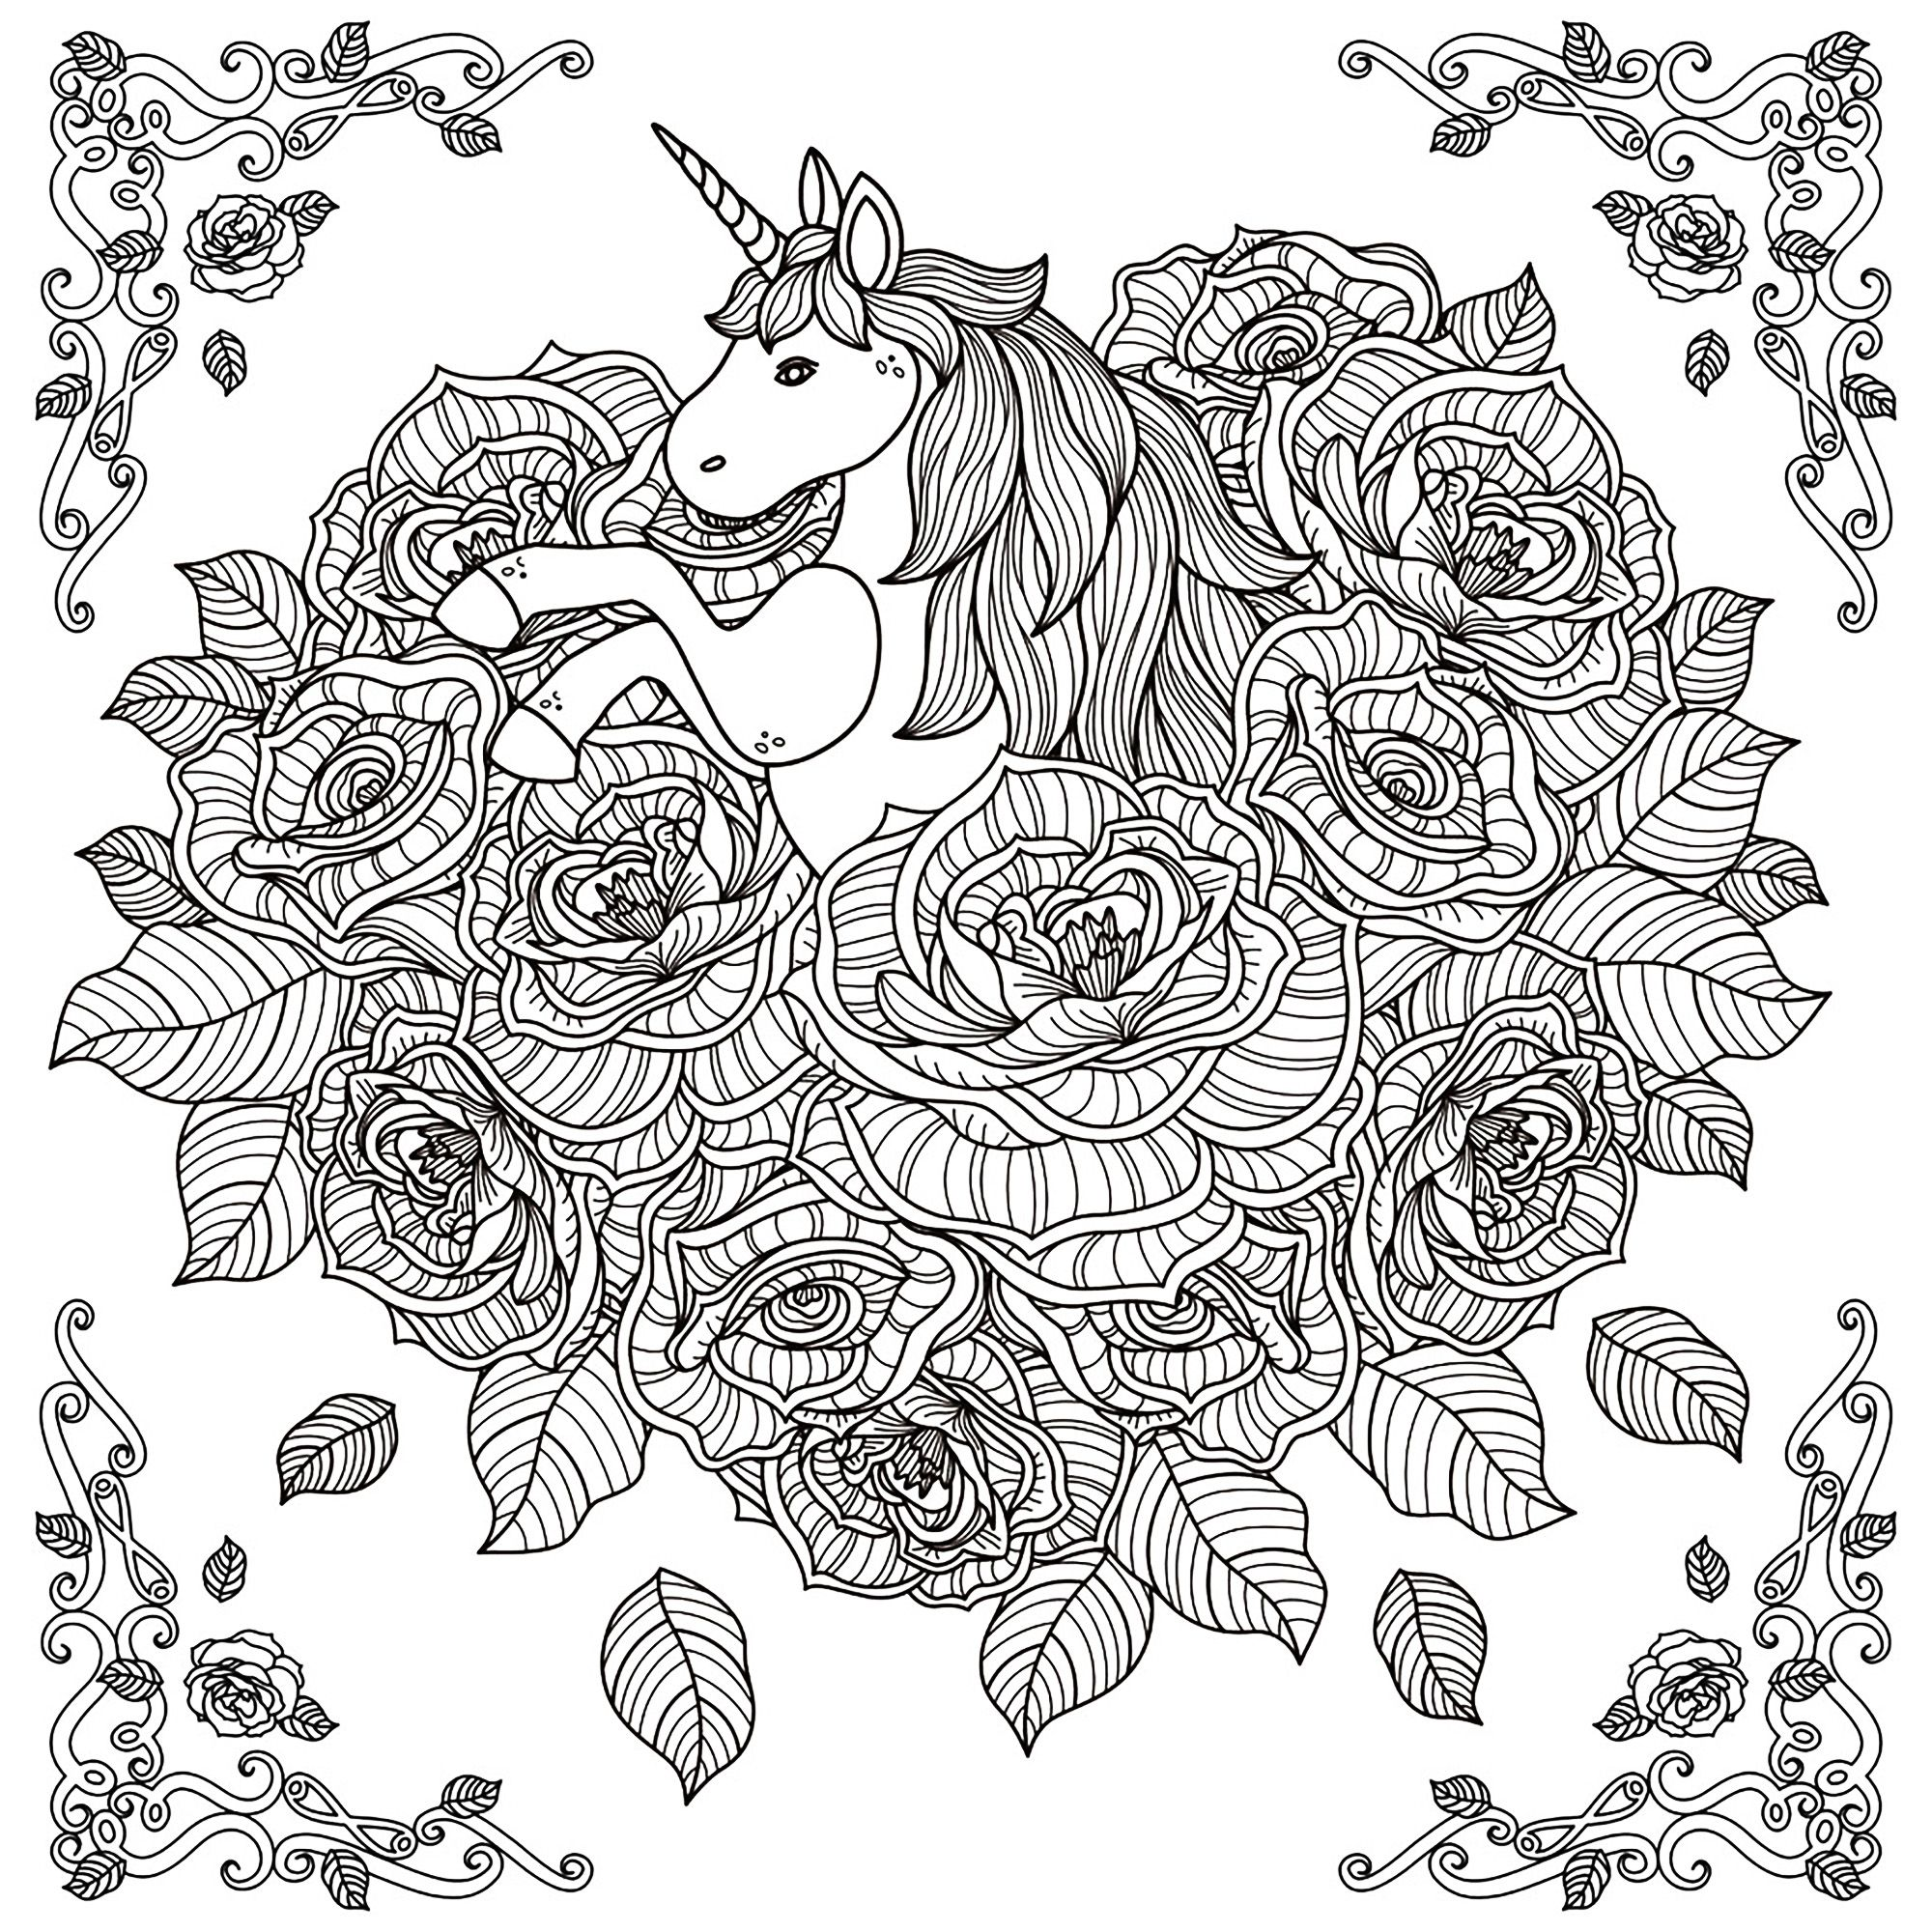 Black and white pattern for coloring book for adults with